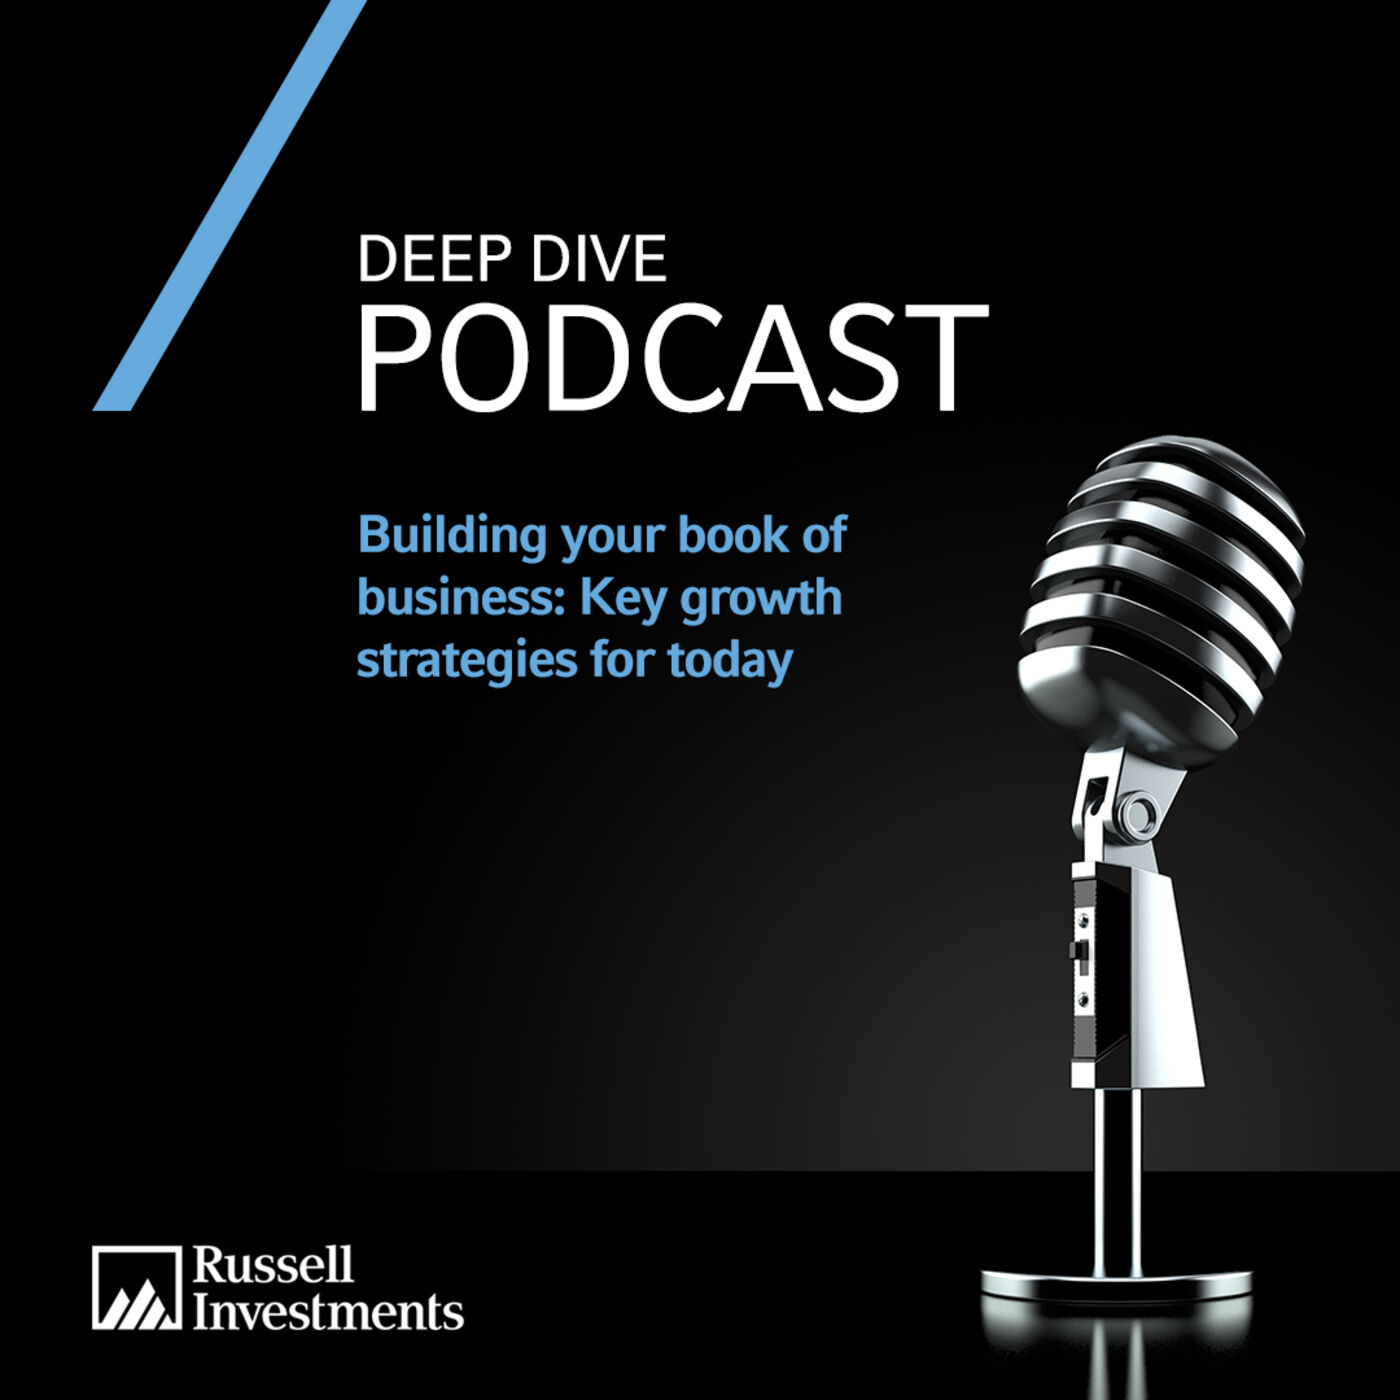 Deep Dive | Building your book of business: Key growth strategies for today